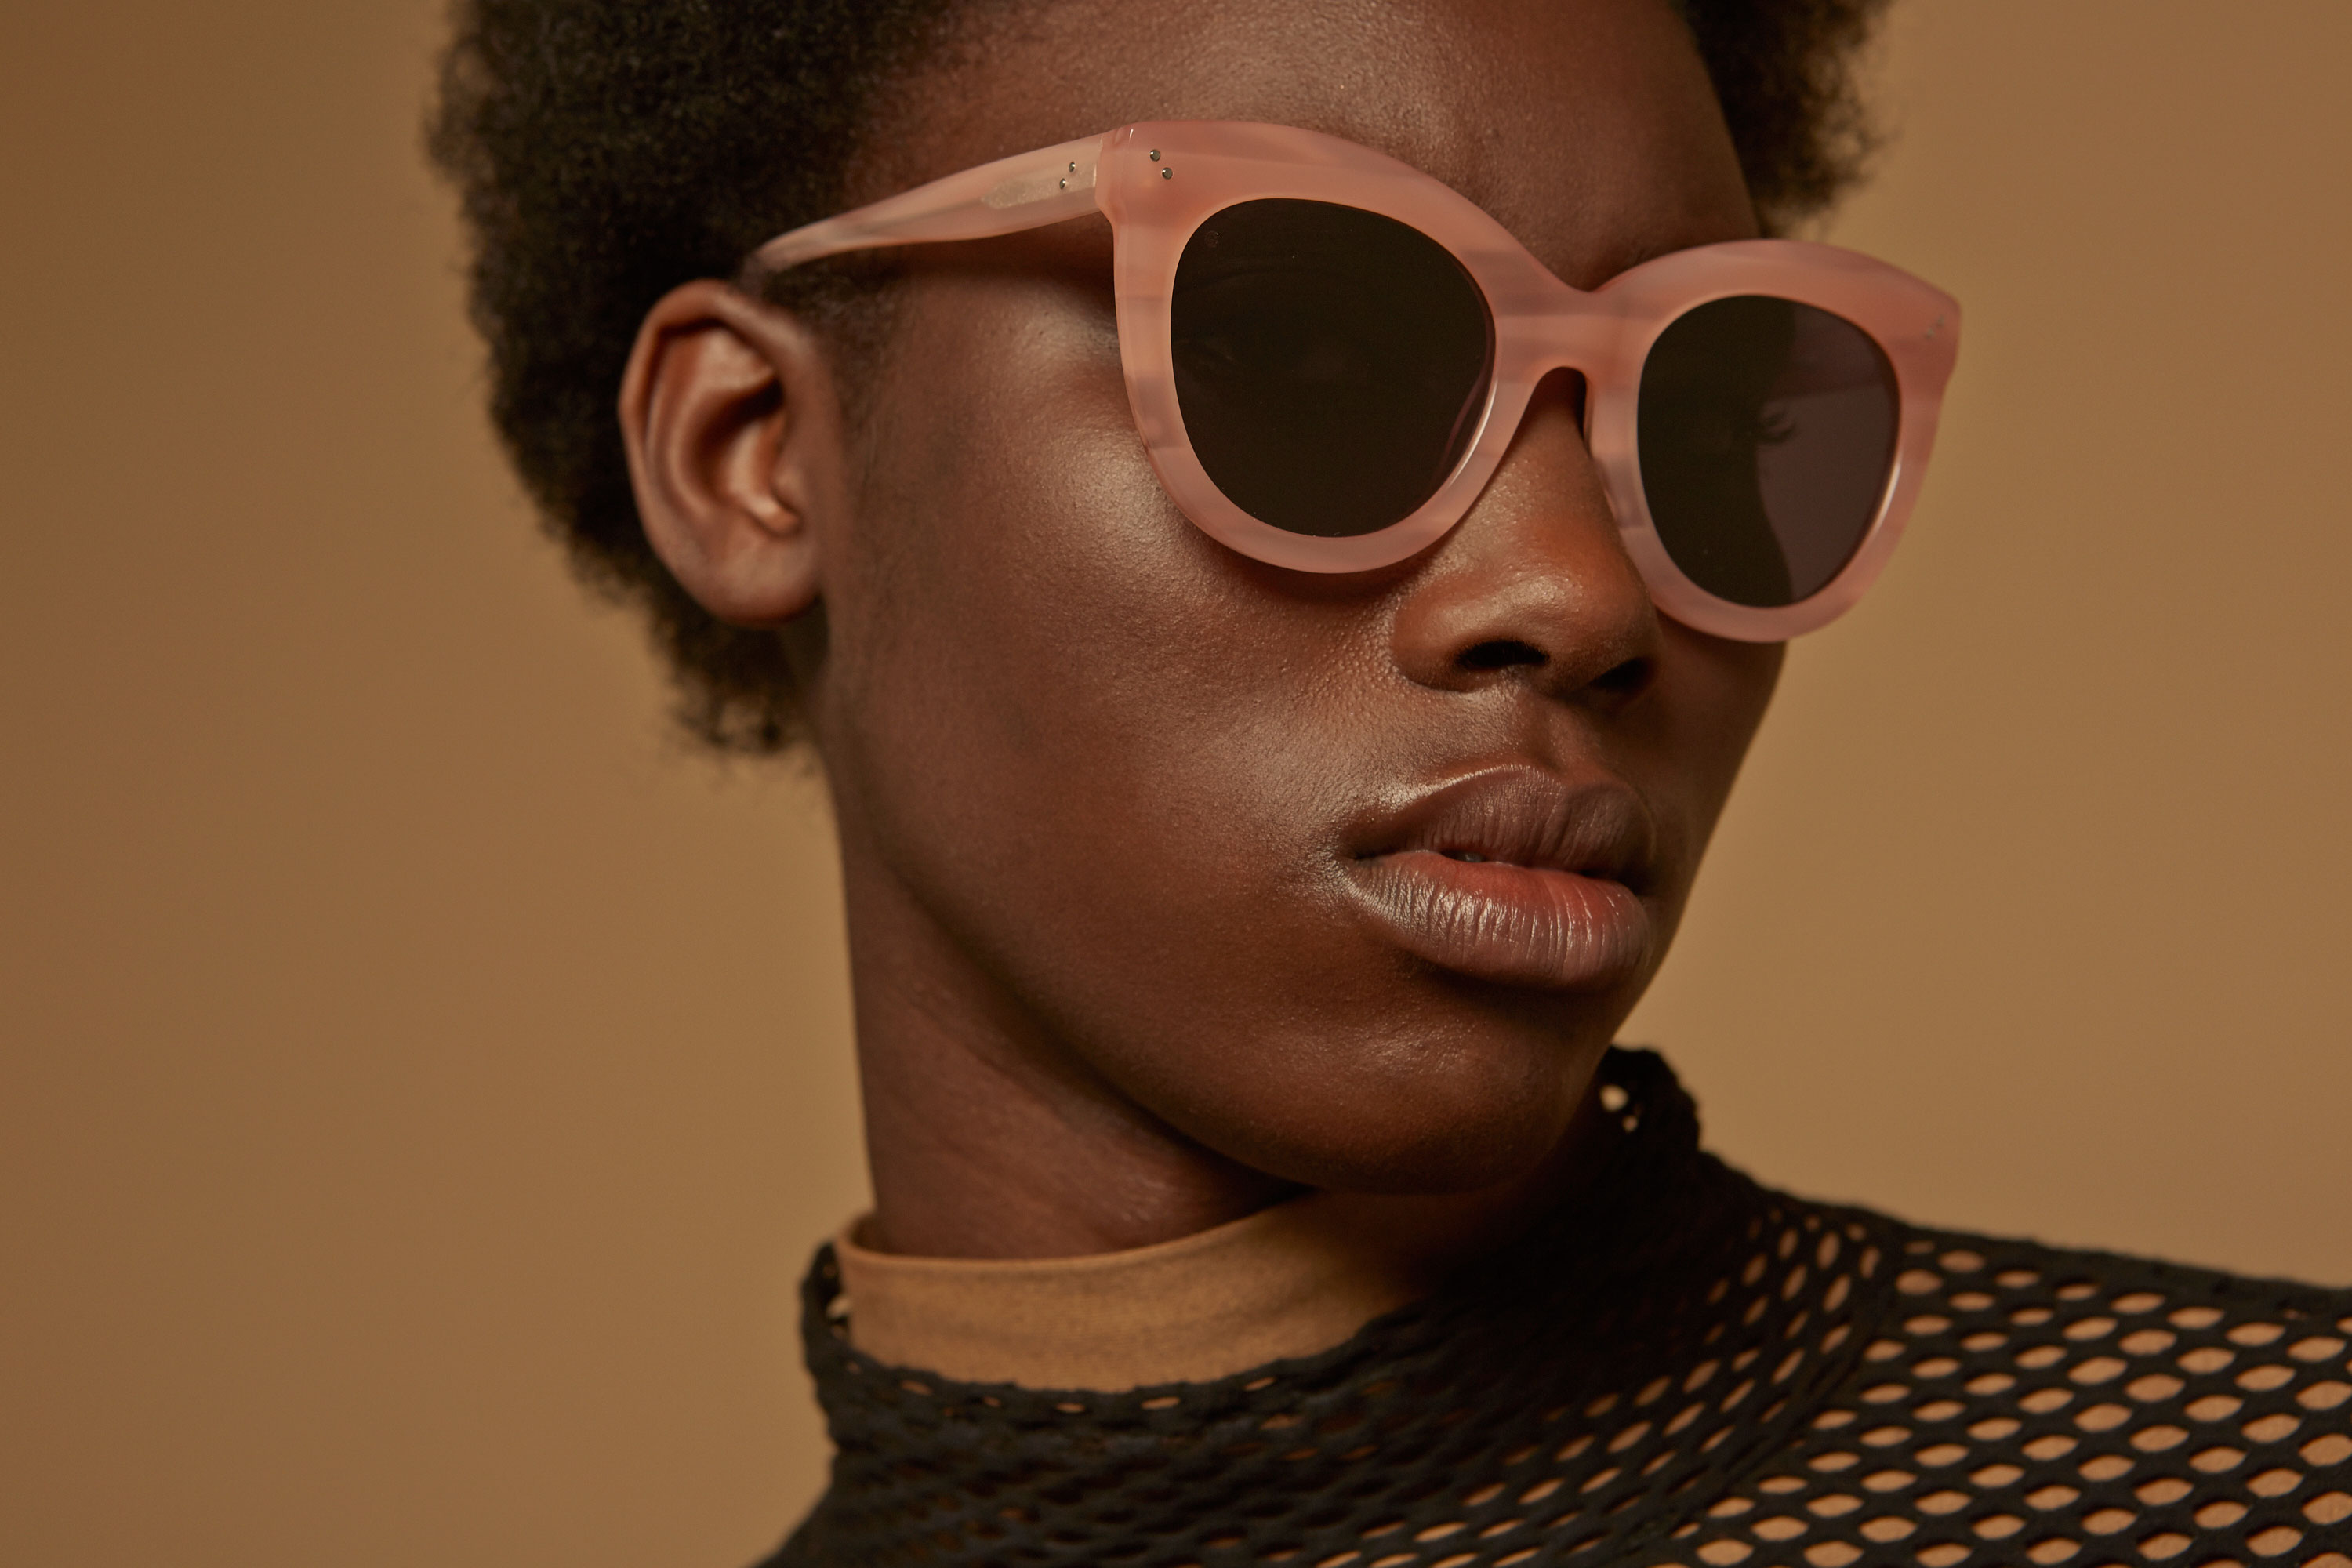 Angel acetate cat eye pink sunglasses by GIGI Studios